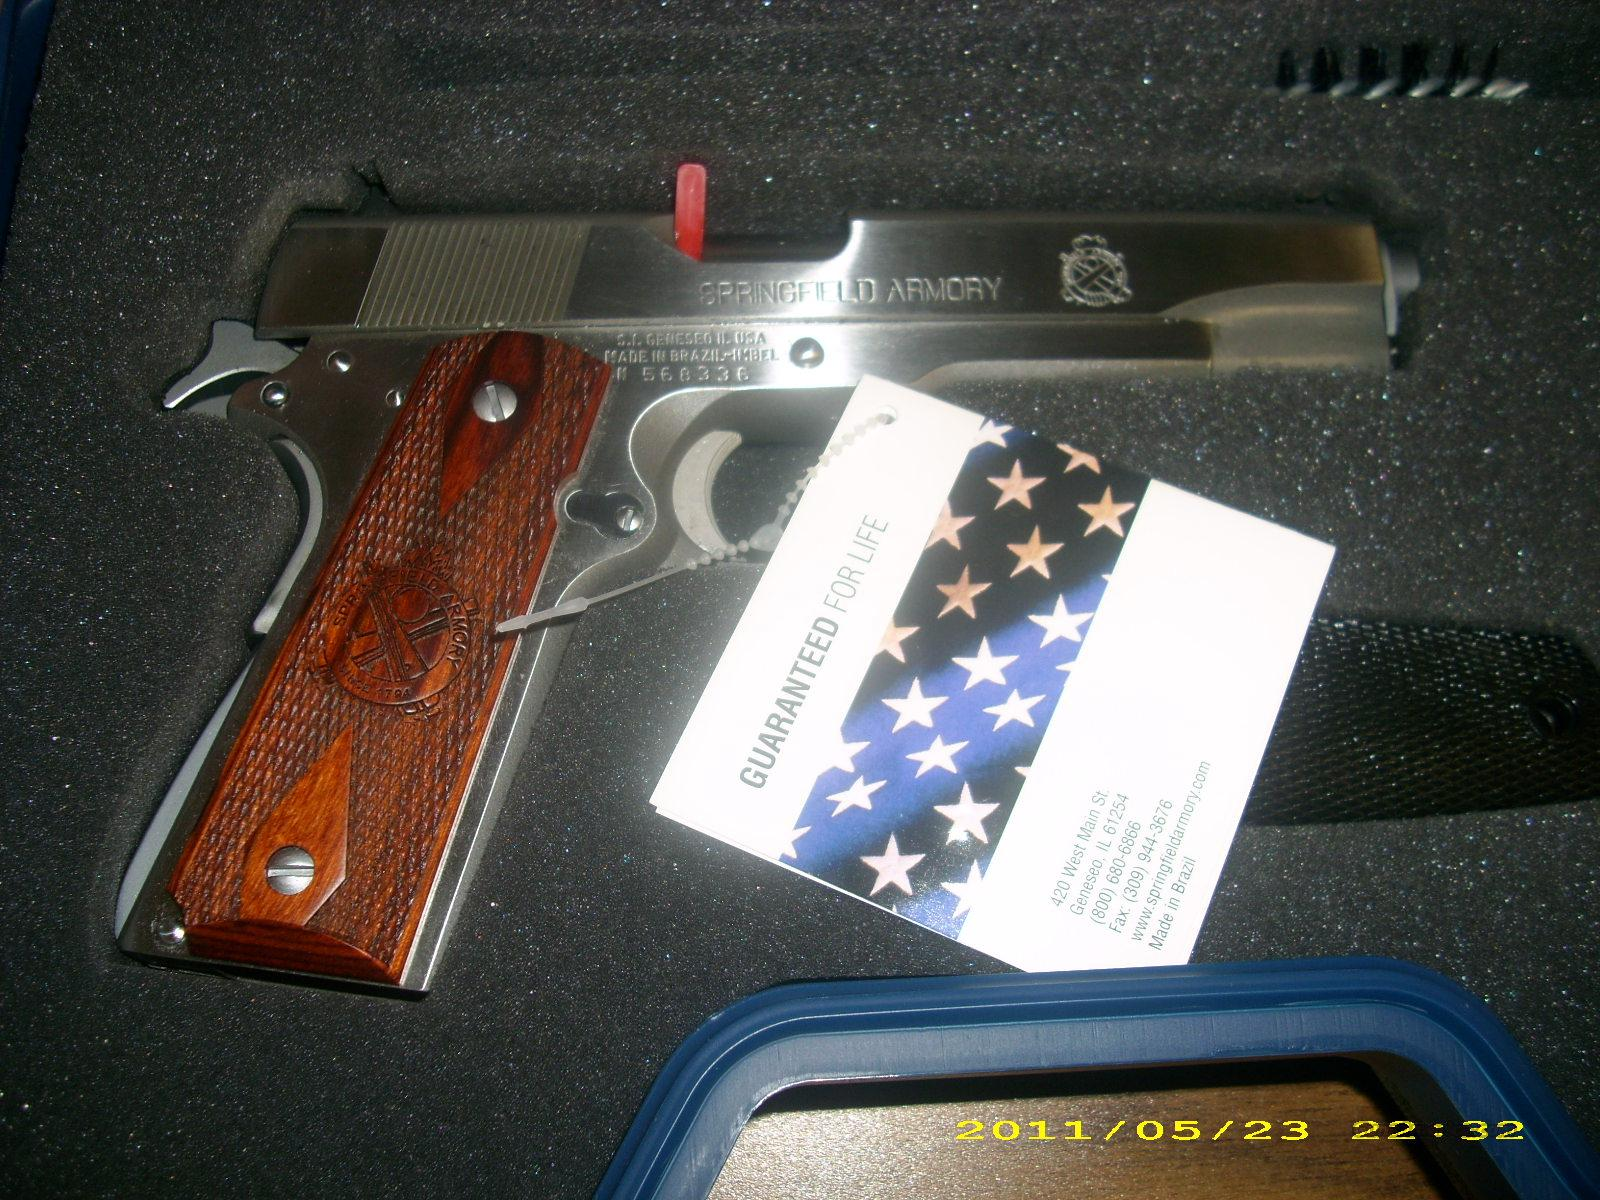 Springfield 1911 45 Milspec Package SS  Guns > Pistols > Springfield Armory Pistols > 1911 Type